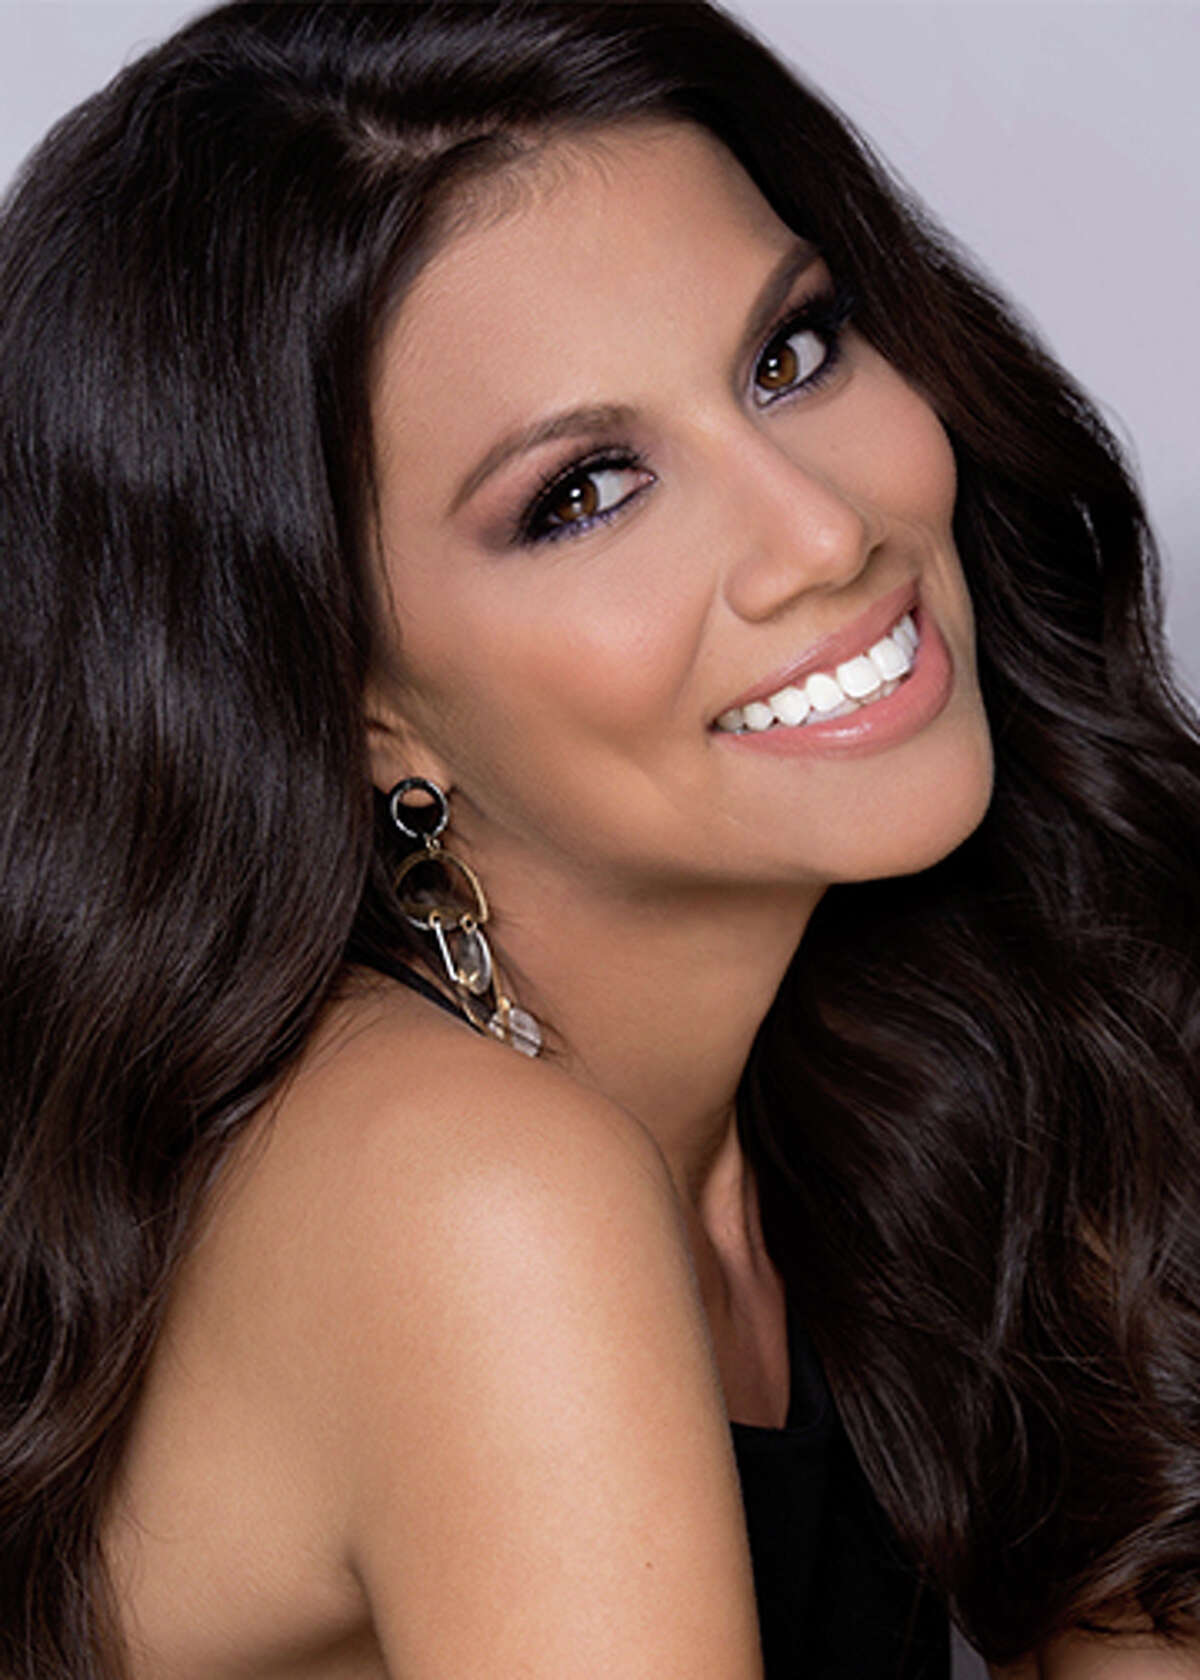 Mrs. Texas Sonia Segura will represent the Lone Star State during the Mrs. America beauty pageant. Keep going to see the other contestants competing against Segura for the national title.